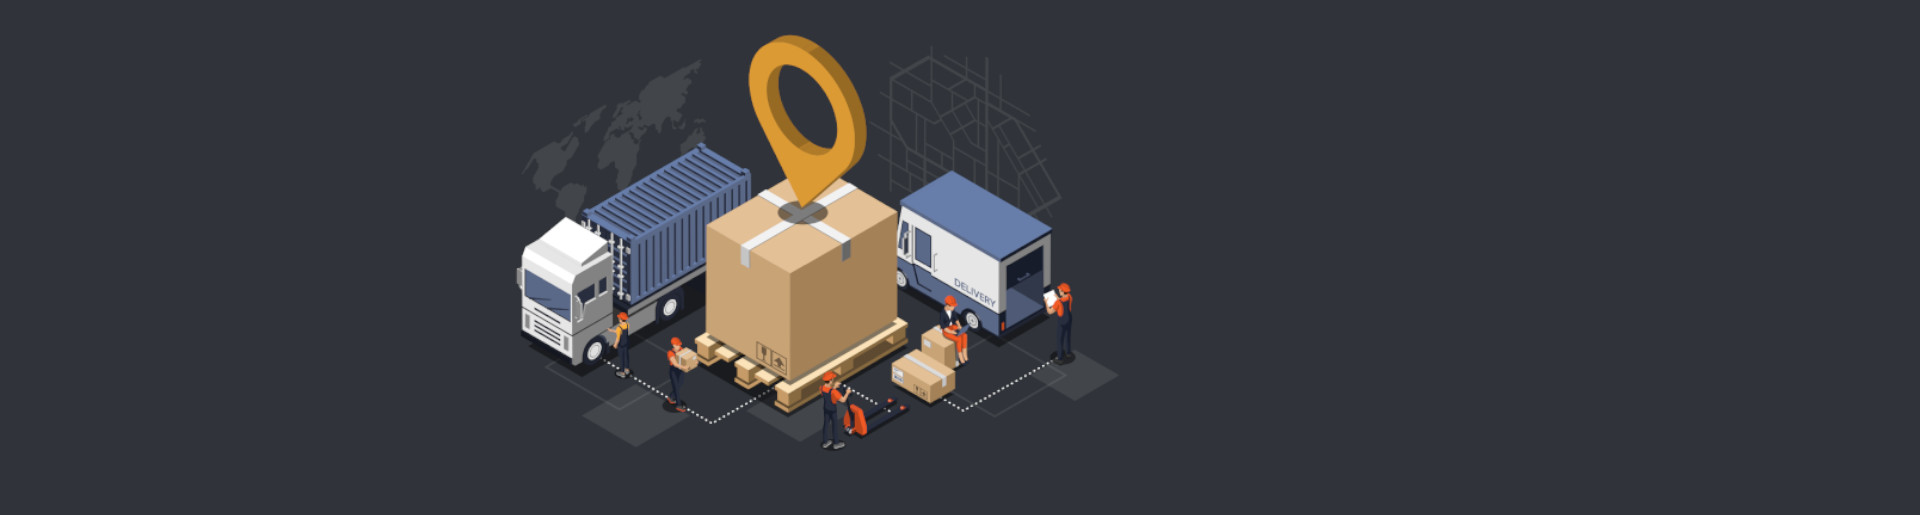 What level of visibility can you reach with IoT in supply chain?